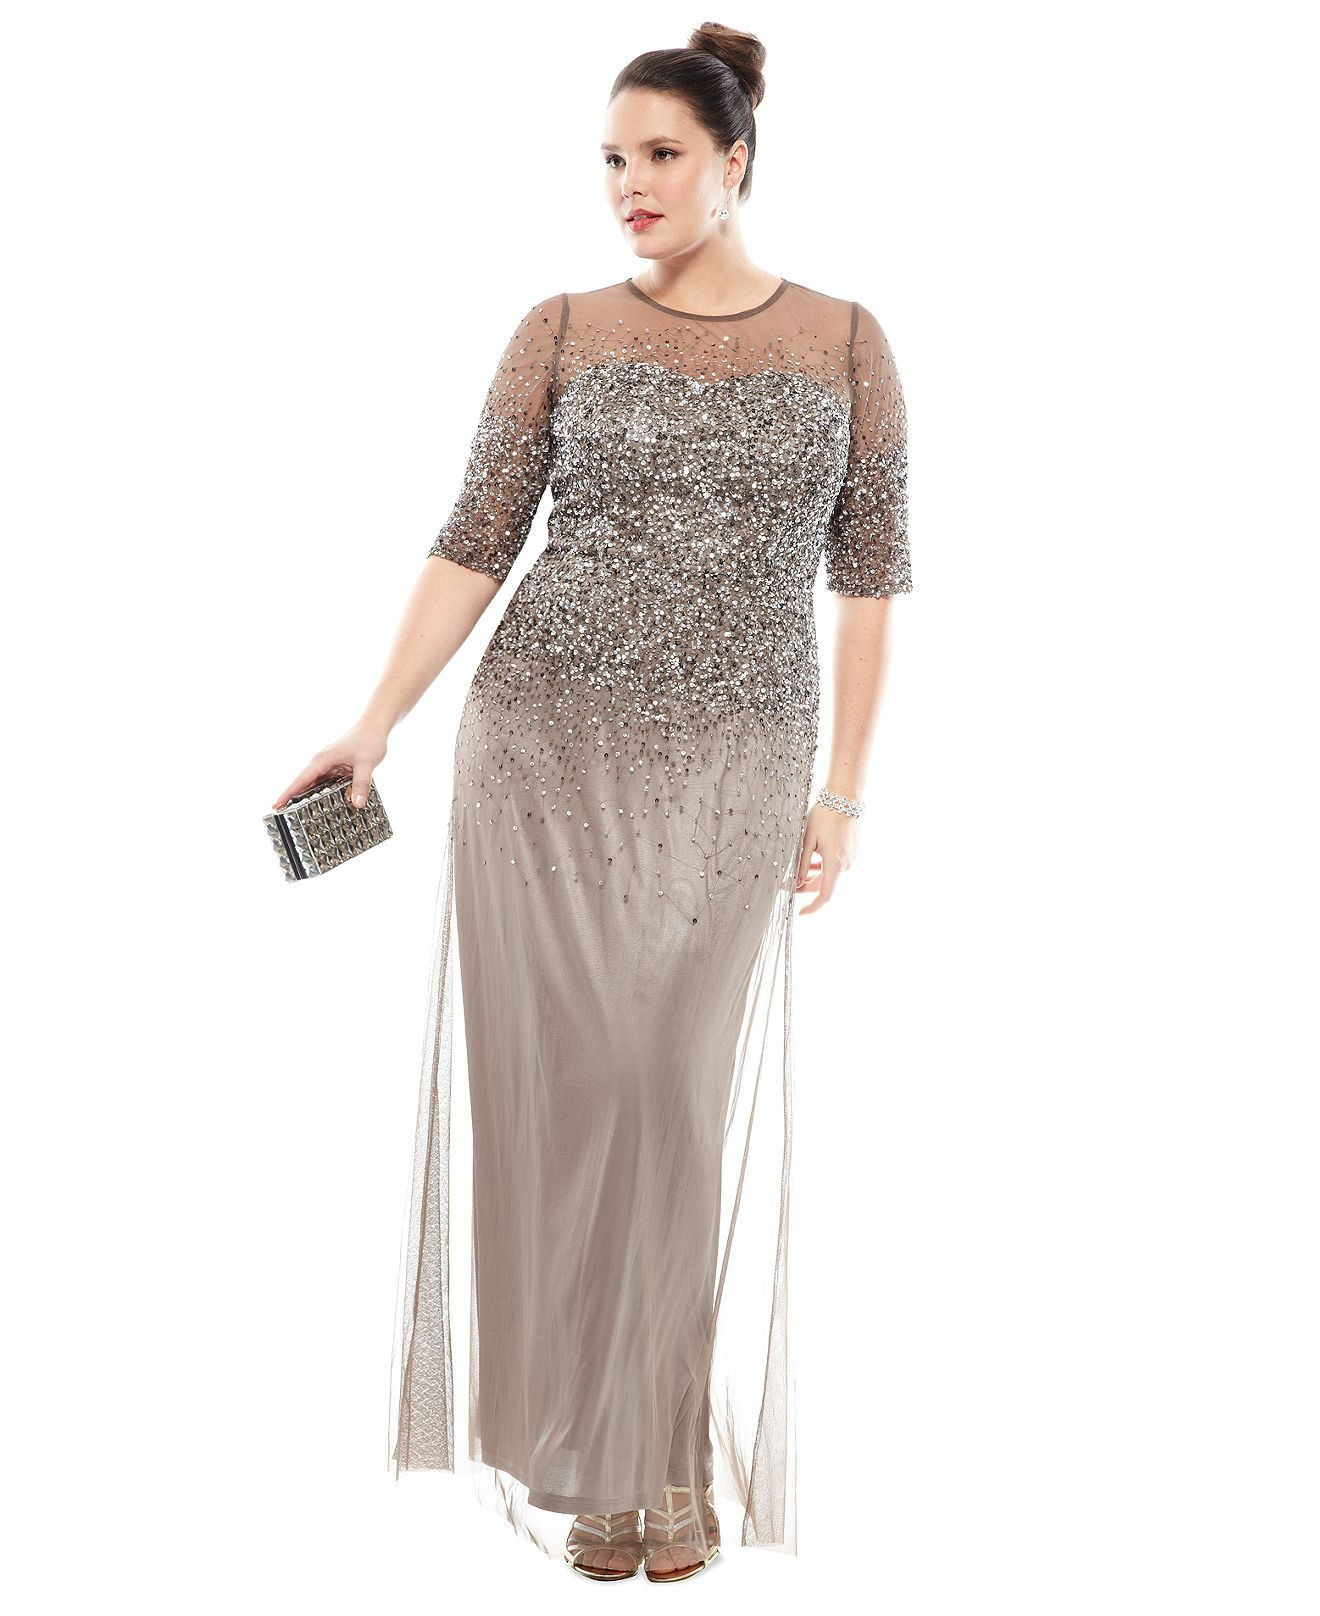 Emejing Macys Plus Size Party Dresses Pictures - Plus Size ...